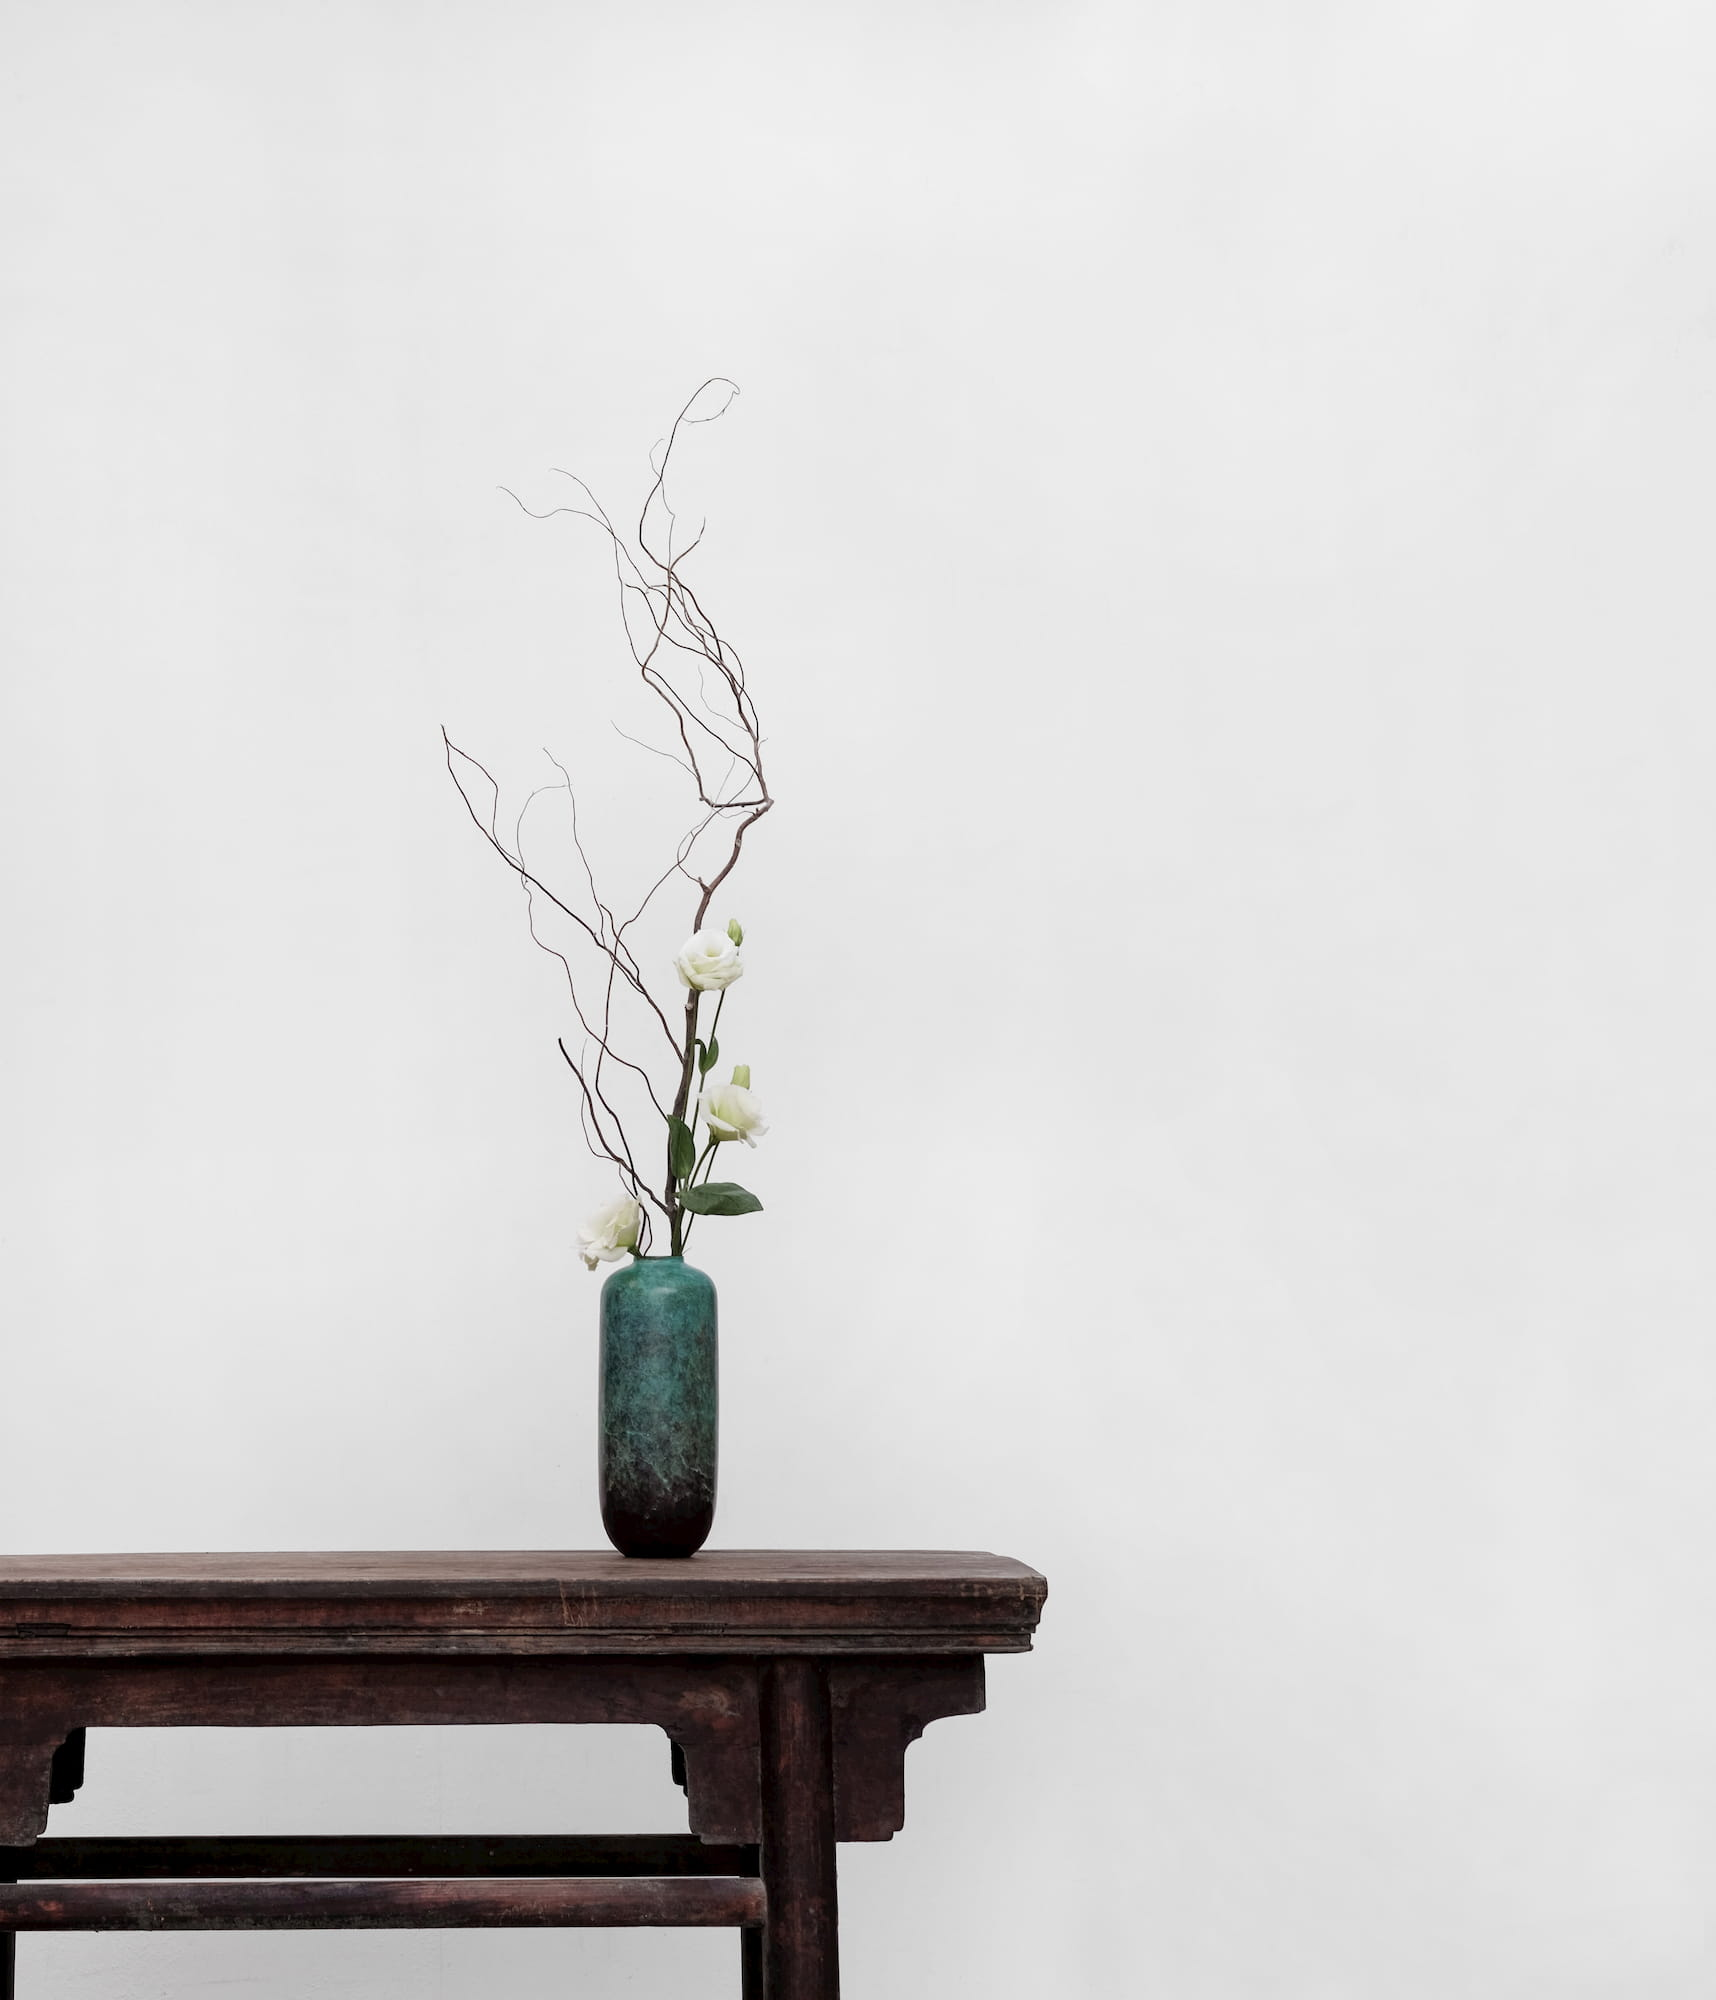 An arrangement of flowers and dry branches rises from a marbled vase resting at the edge of a dark wooden table.